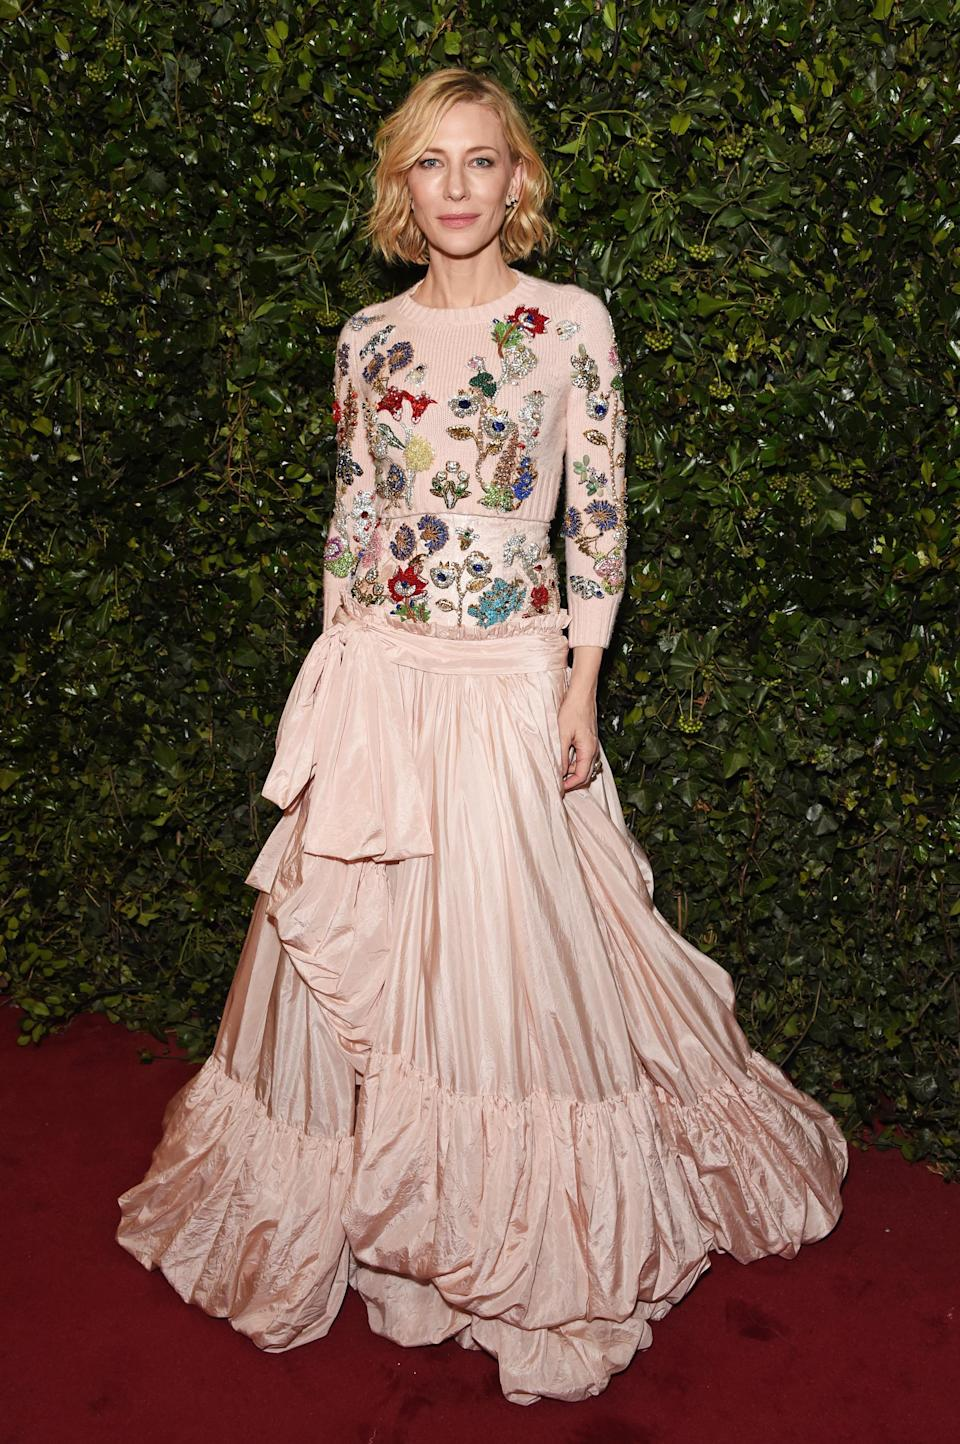 <p>Cate stole the show in a pink Alexander McQueen look featuring a knitted top and vintage-style skirt. <i>[Photo: Getty]</i> </p>